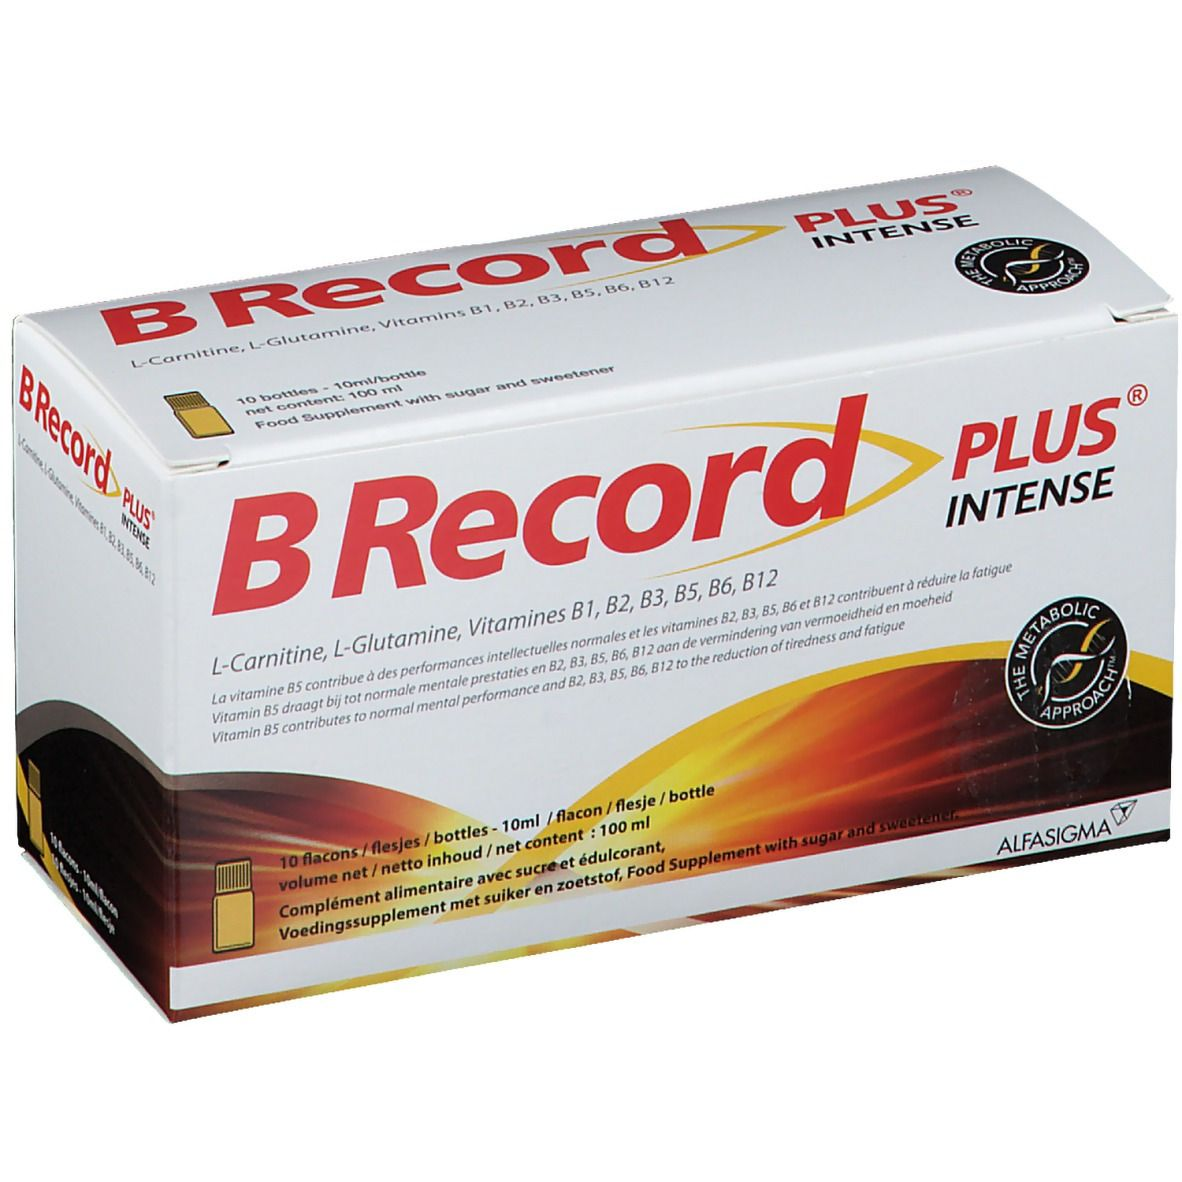 Image of BRecord Plus ® Intense